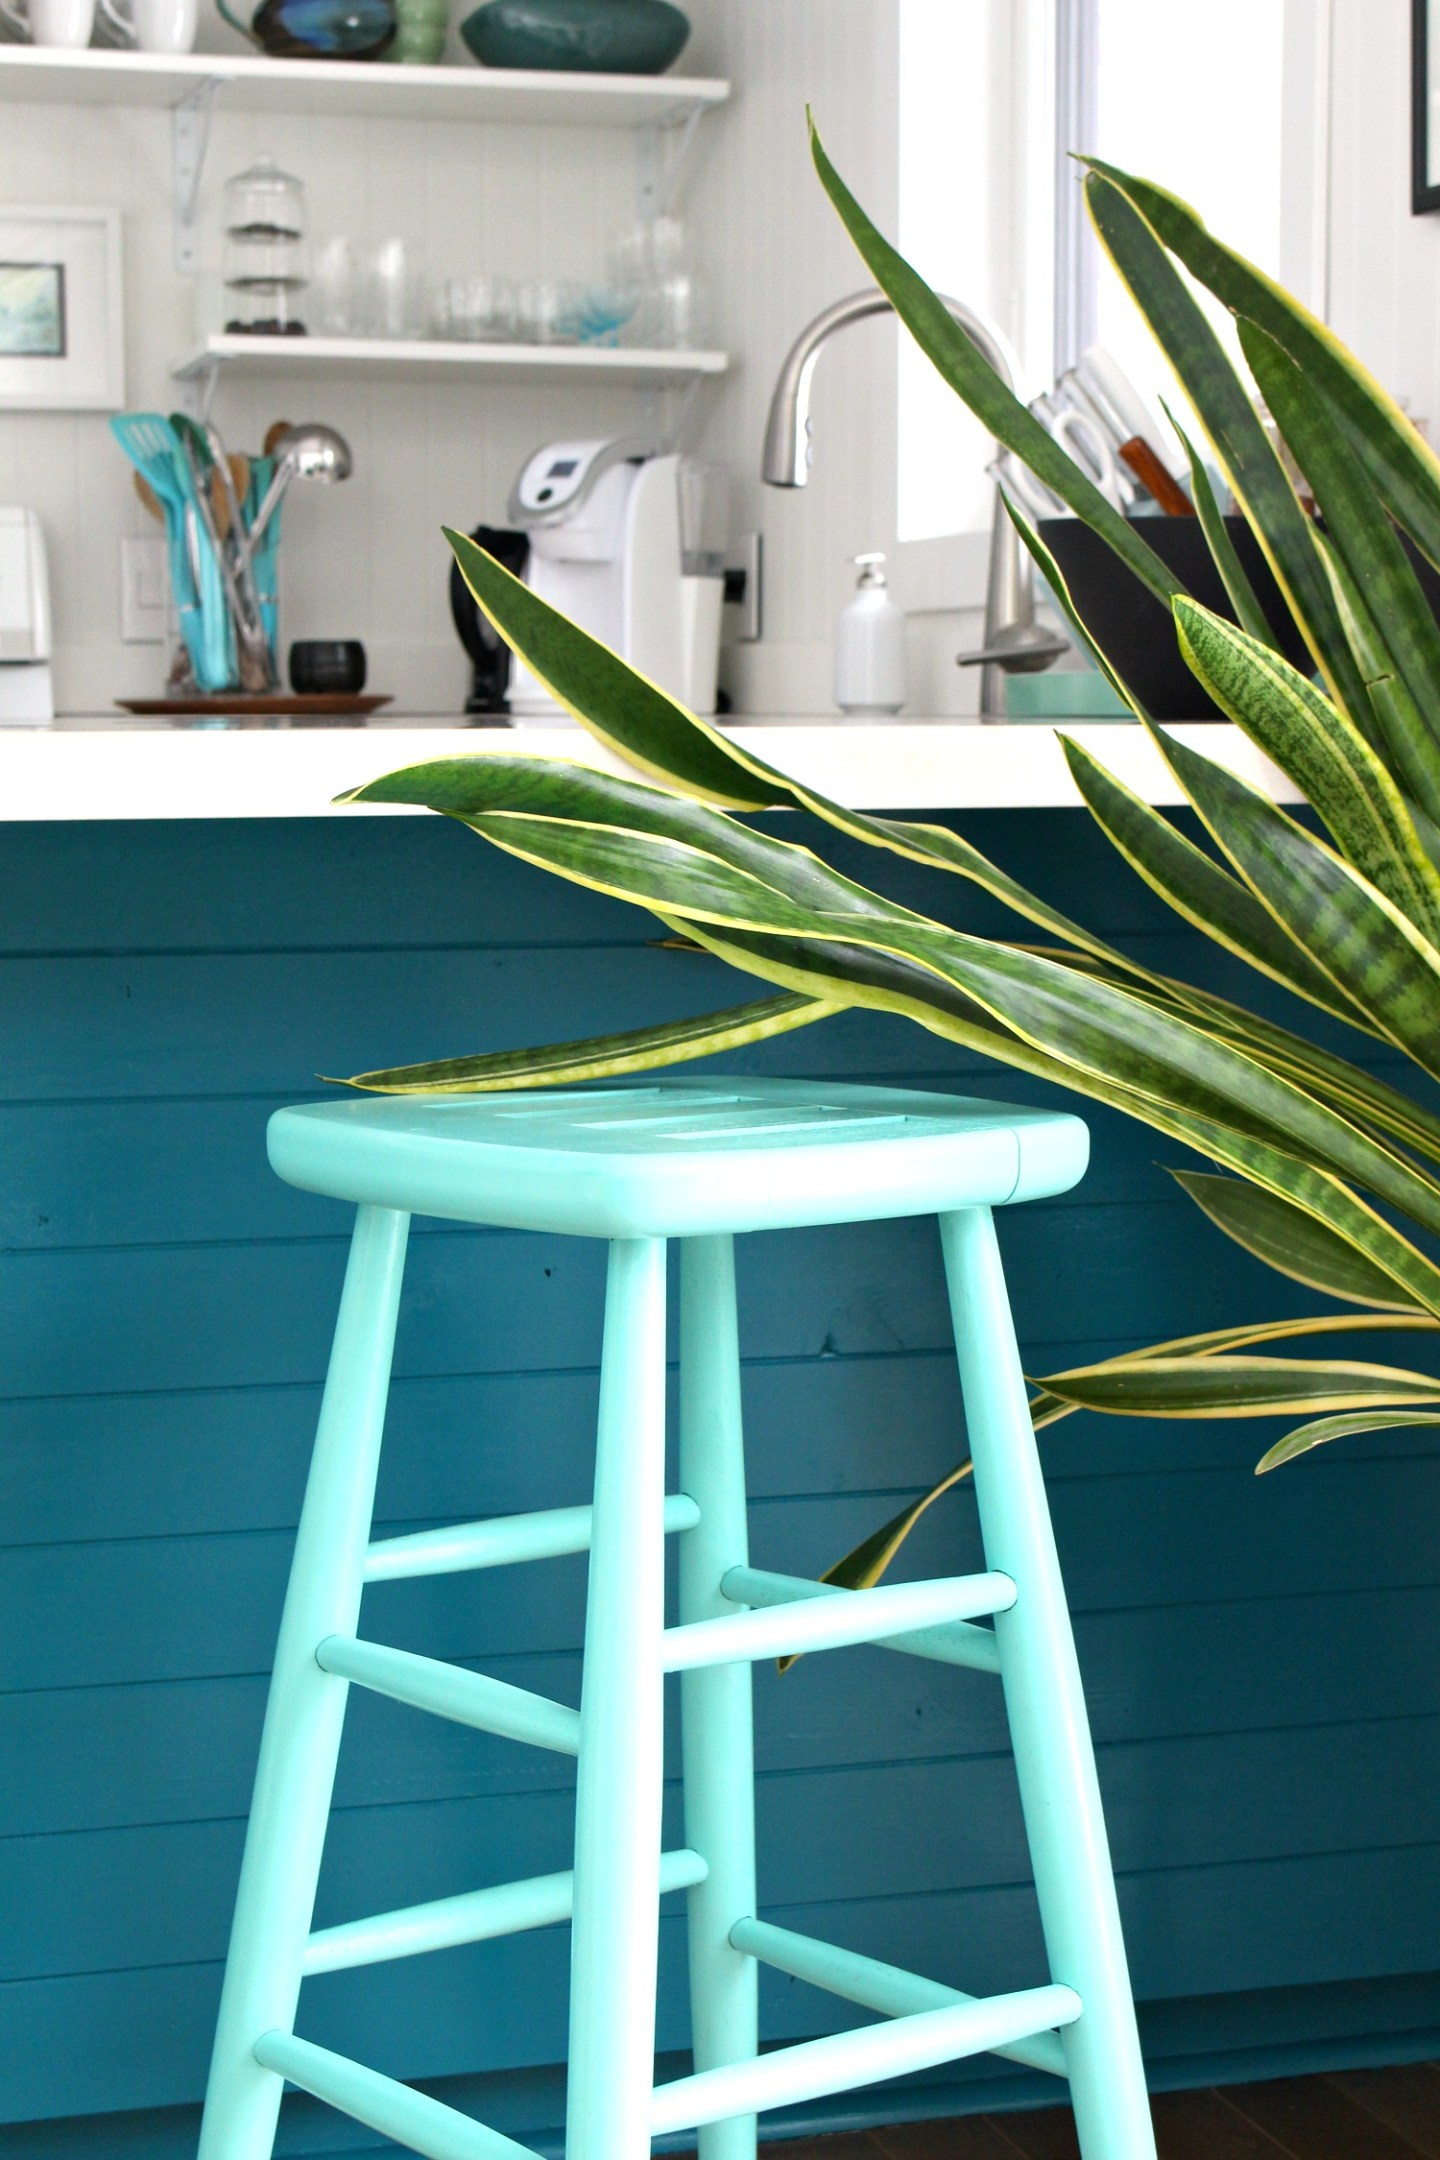 Turquoise Lacquer Stool Makeover | Rust-Oleum Speciality Lacquer Turquoise Review #lacquerpaint #furnituremakeover #upcycle #spraypaint #rustoleum